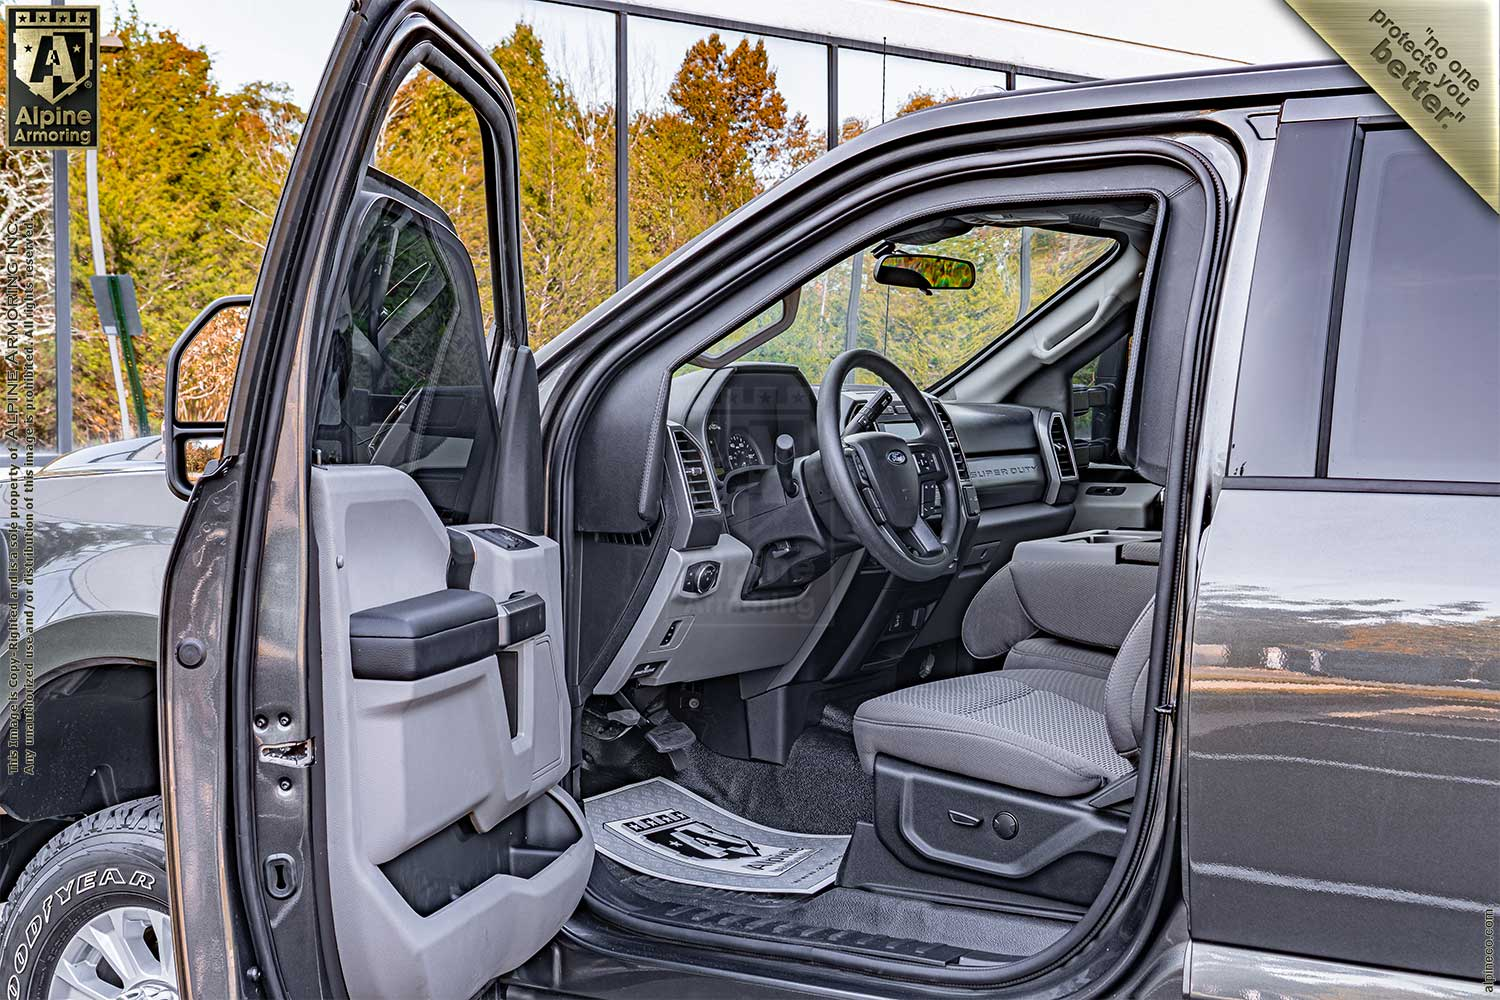 Inventory Pickup Truck Ford F-350 9694 Exterior Interior Galleries